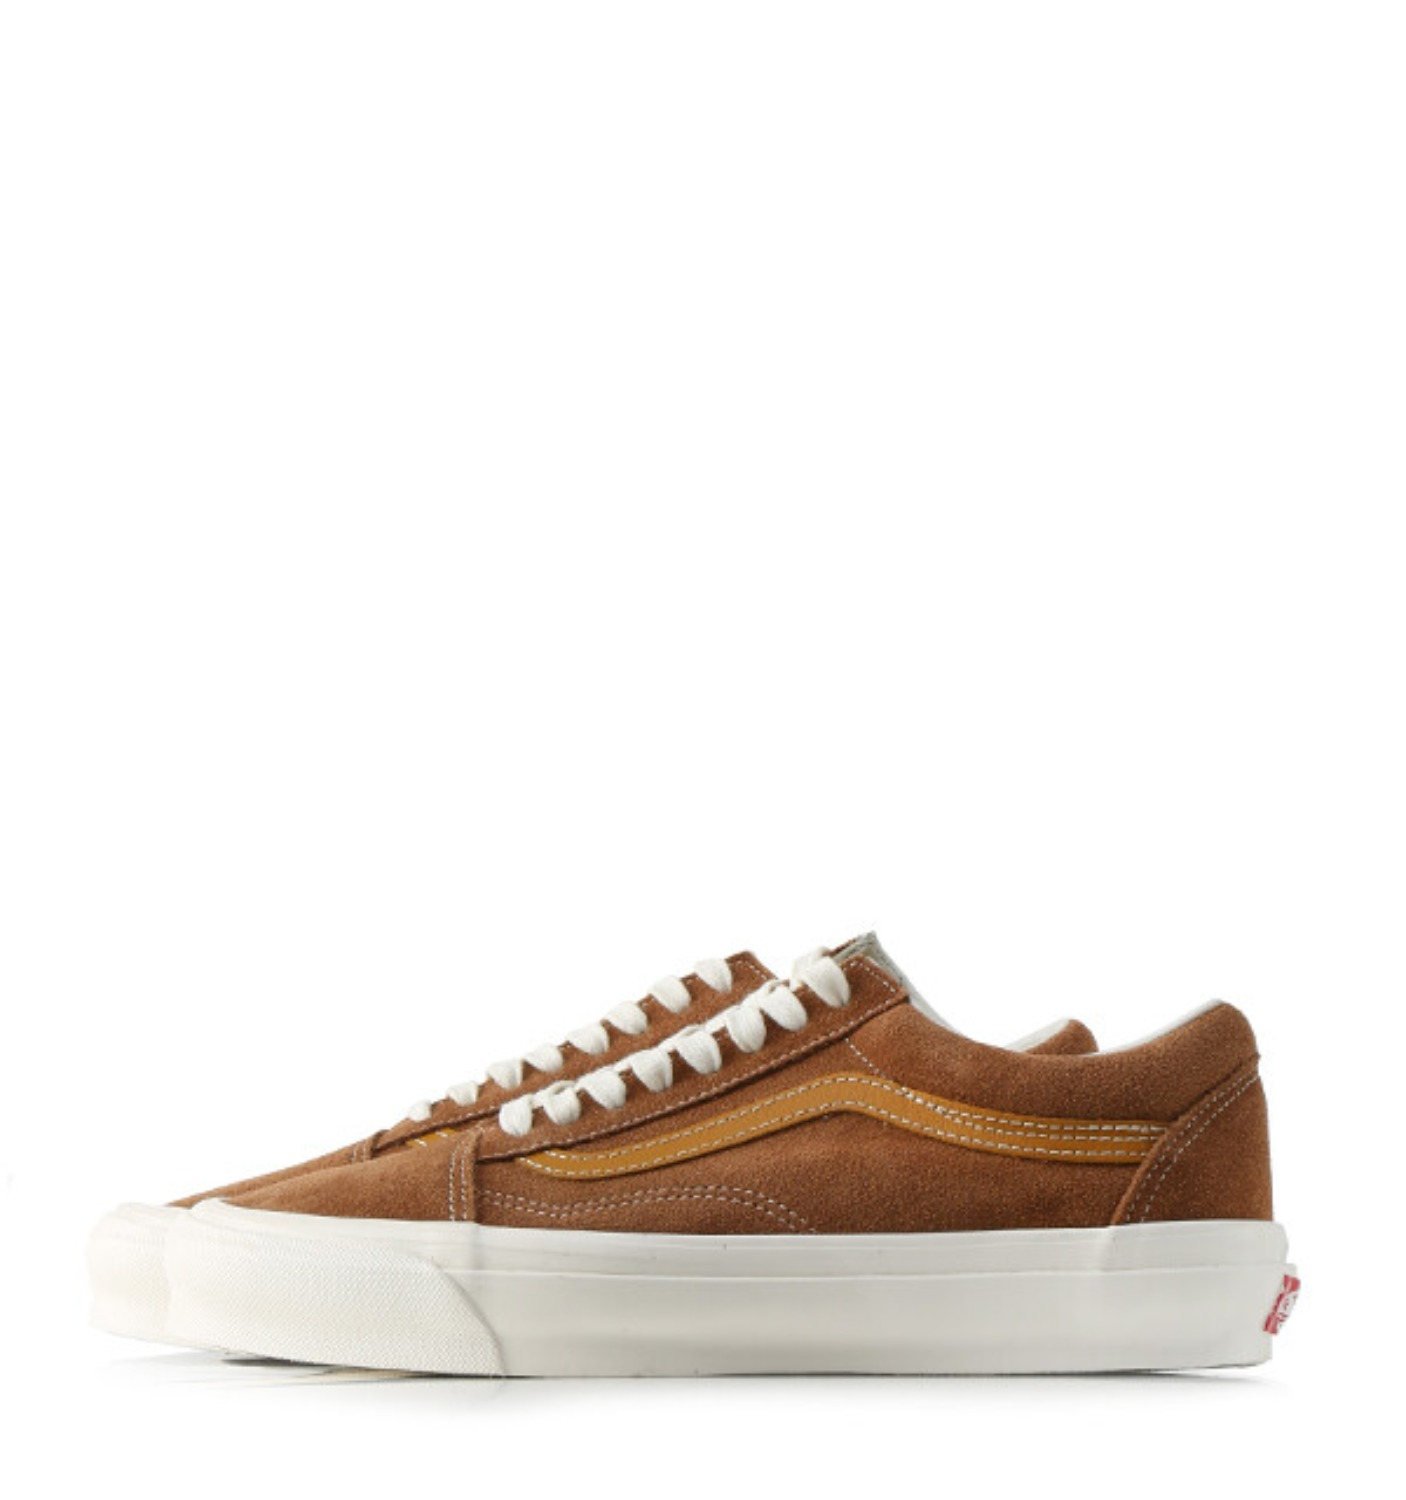 OG Old Skool LX(Suede) dachshund/buckthorn brown